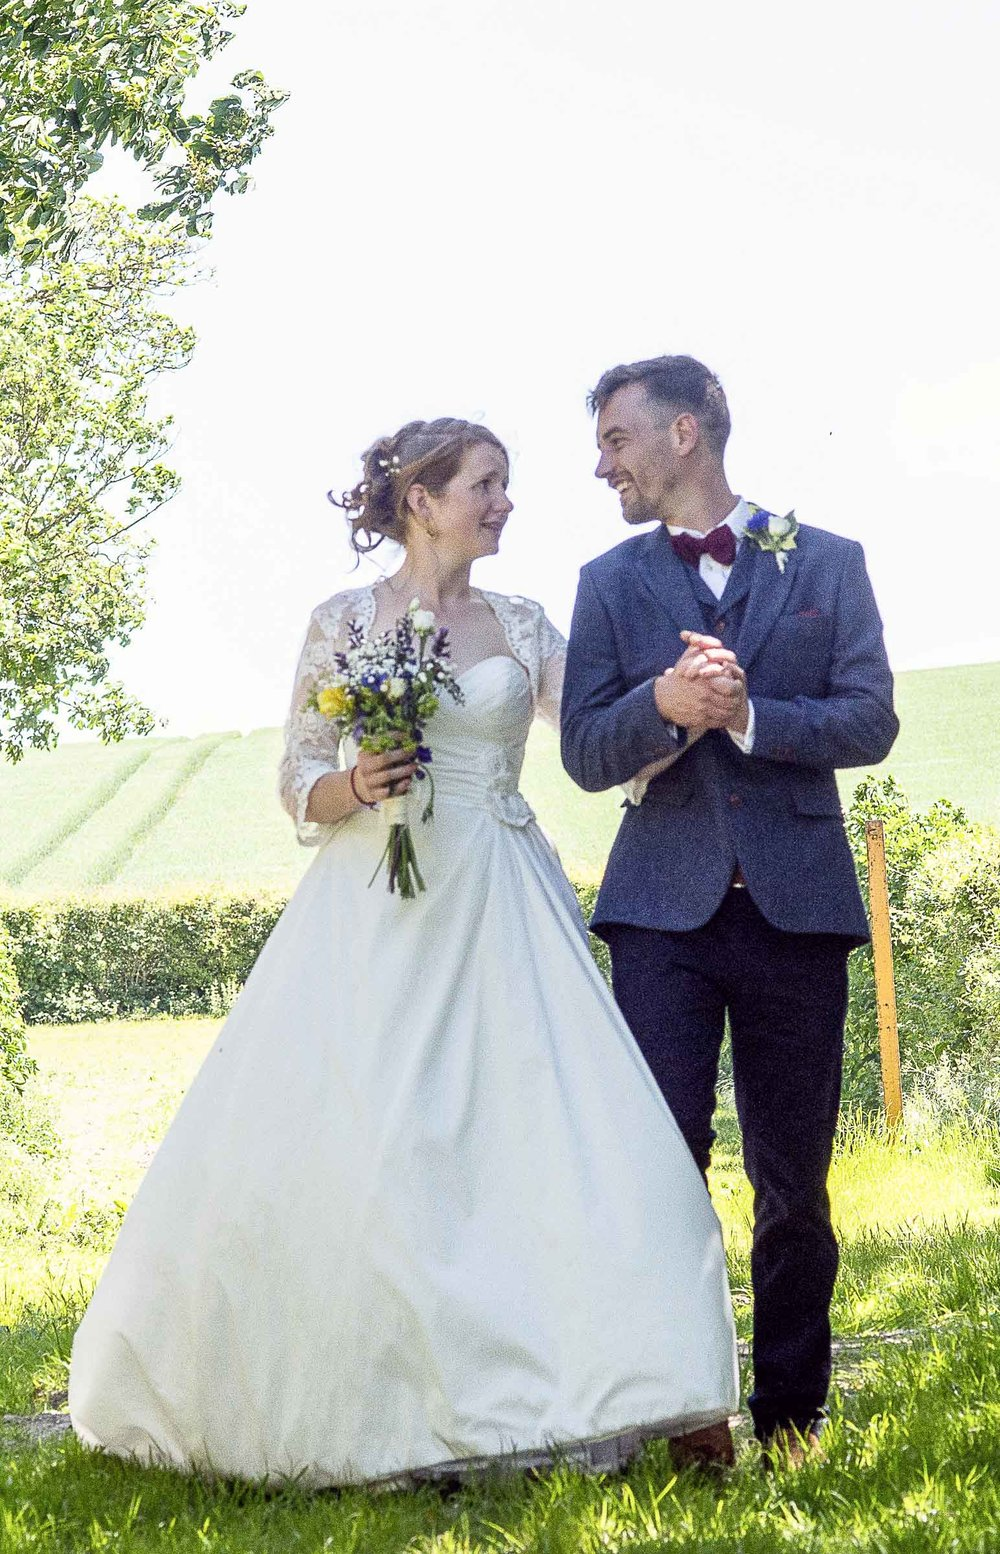 Bride and groom walking through a summer field